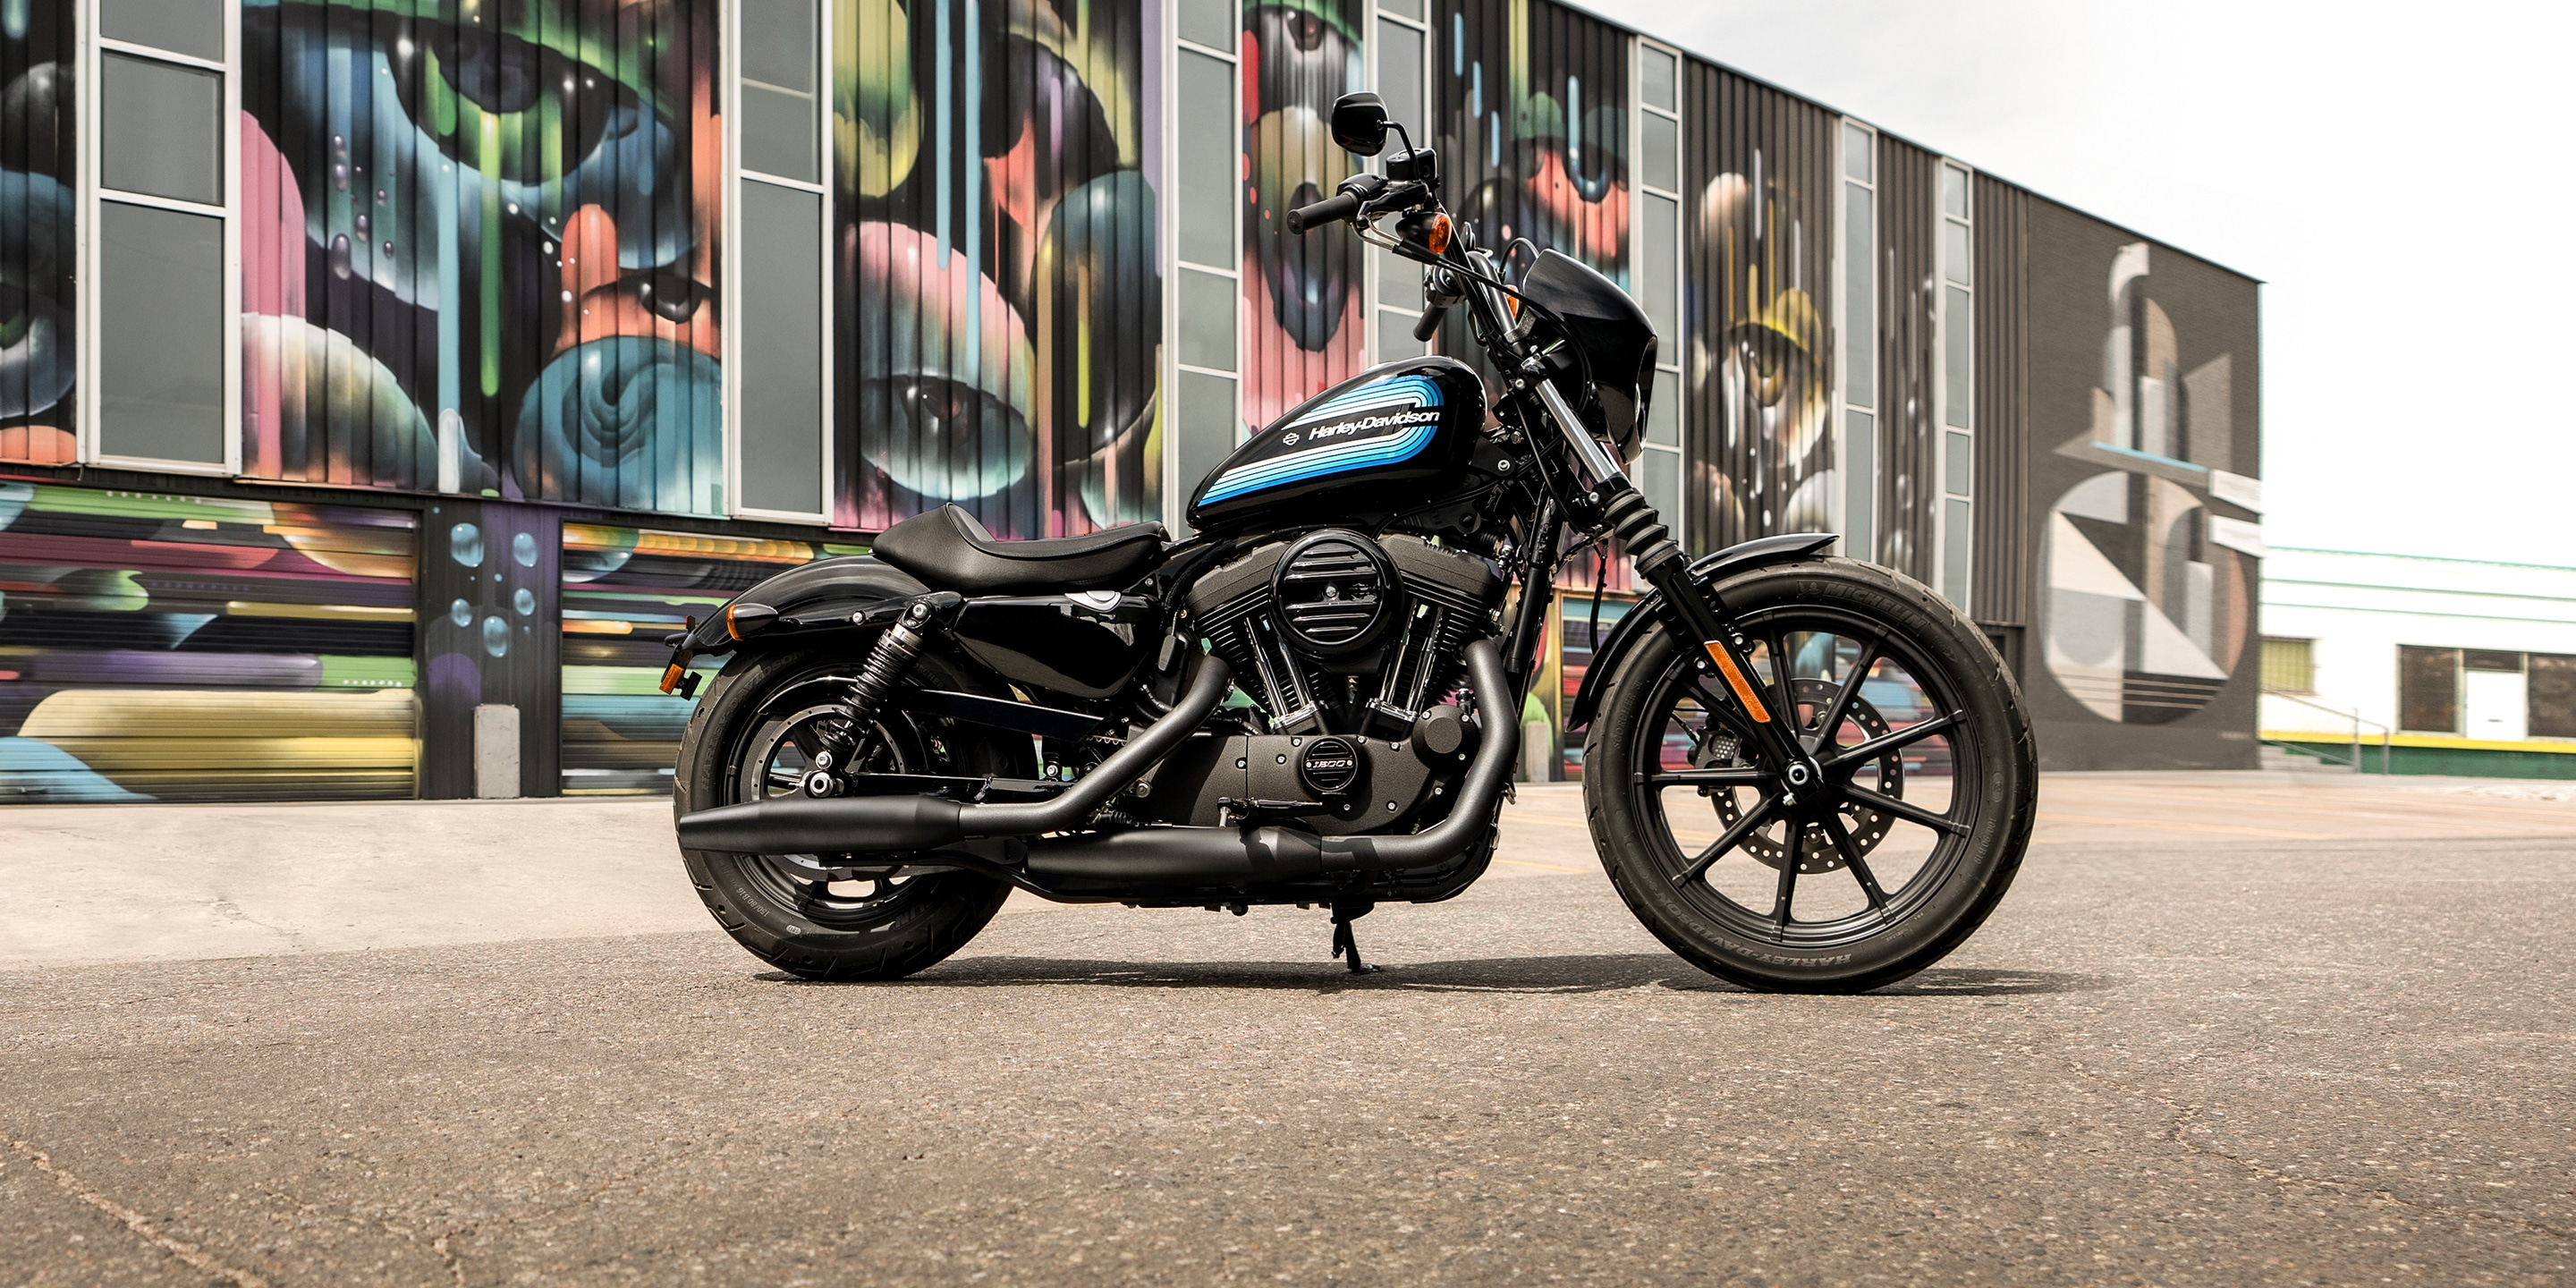 2019 Iron 1200 motorcycle parked in front of a graffiti wall